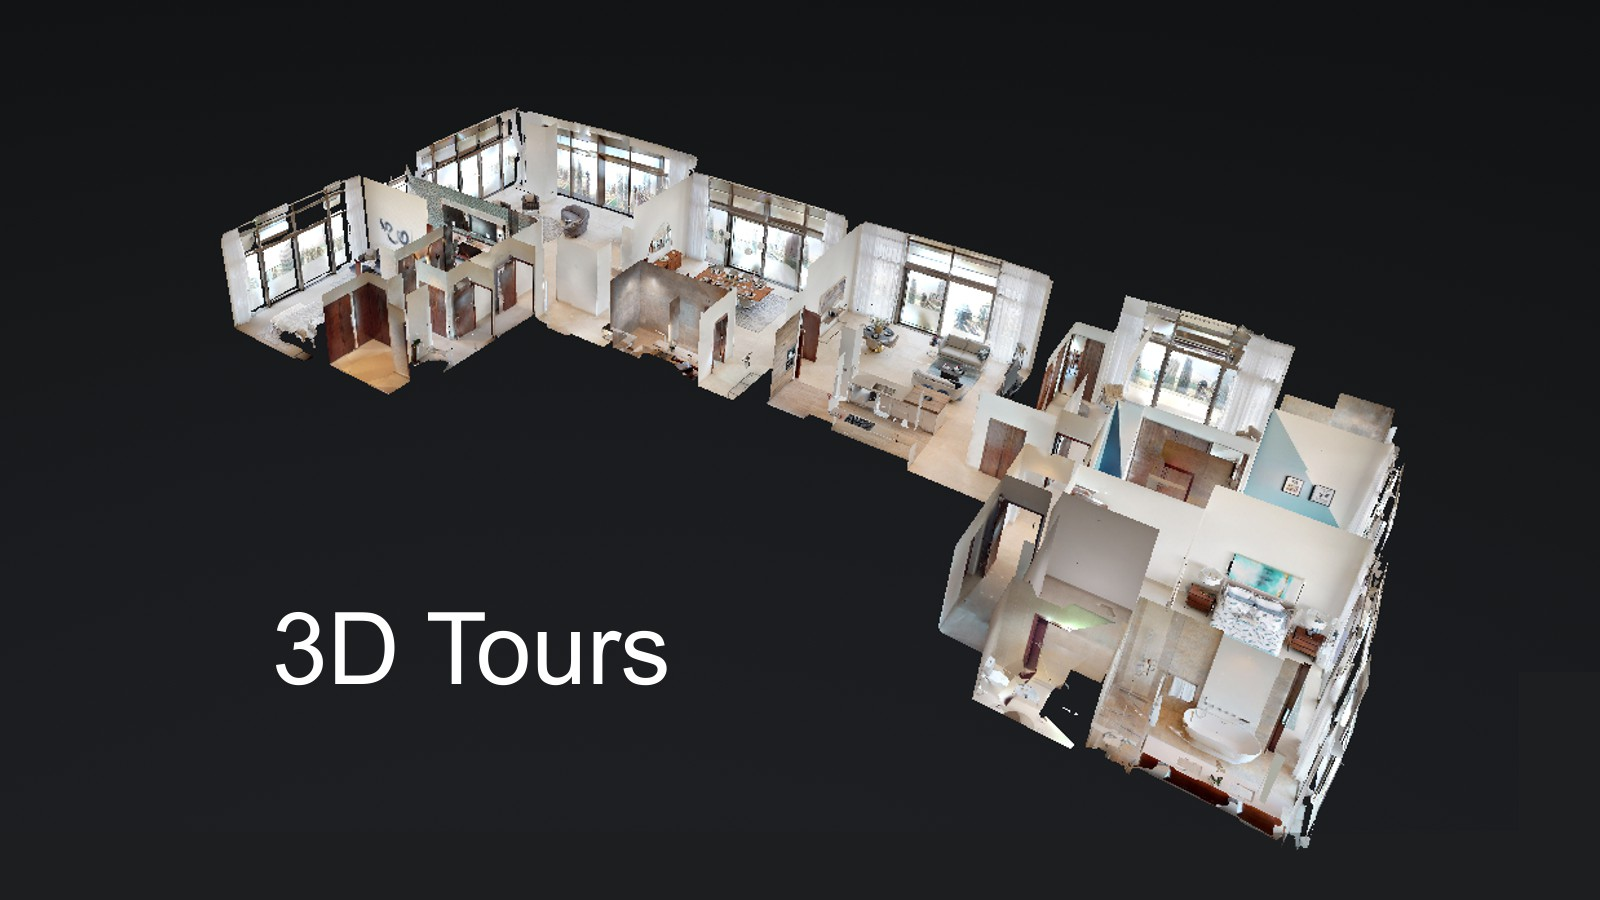 Global viewr 3D Tours Slide